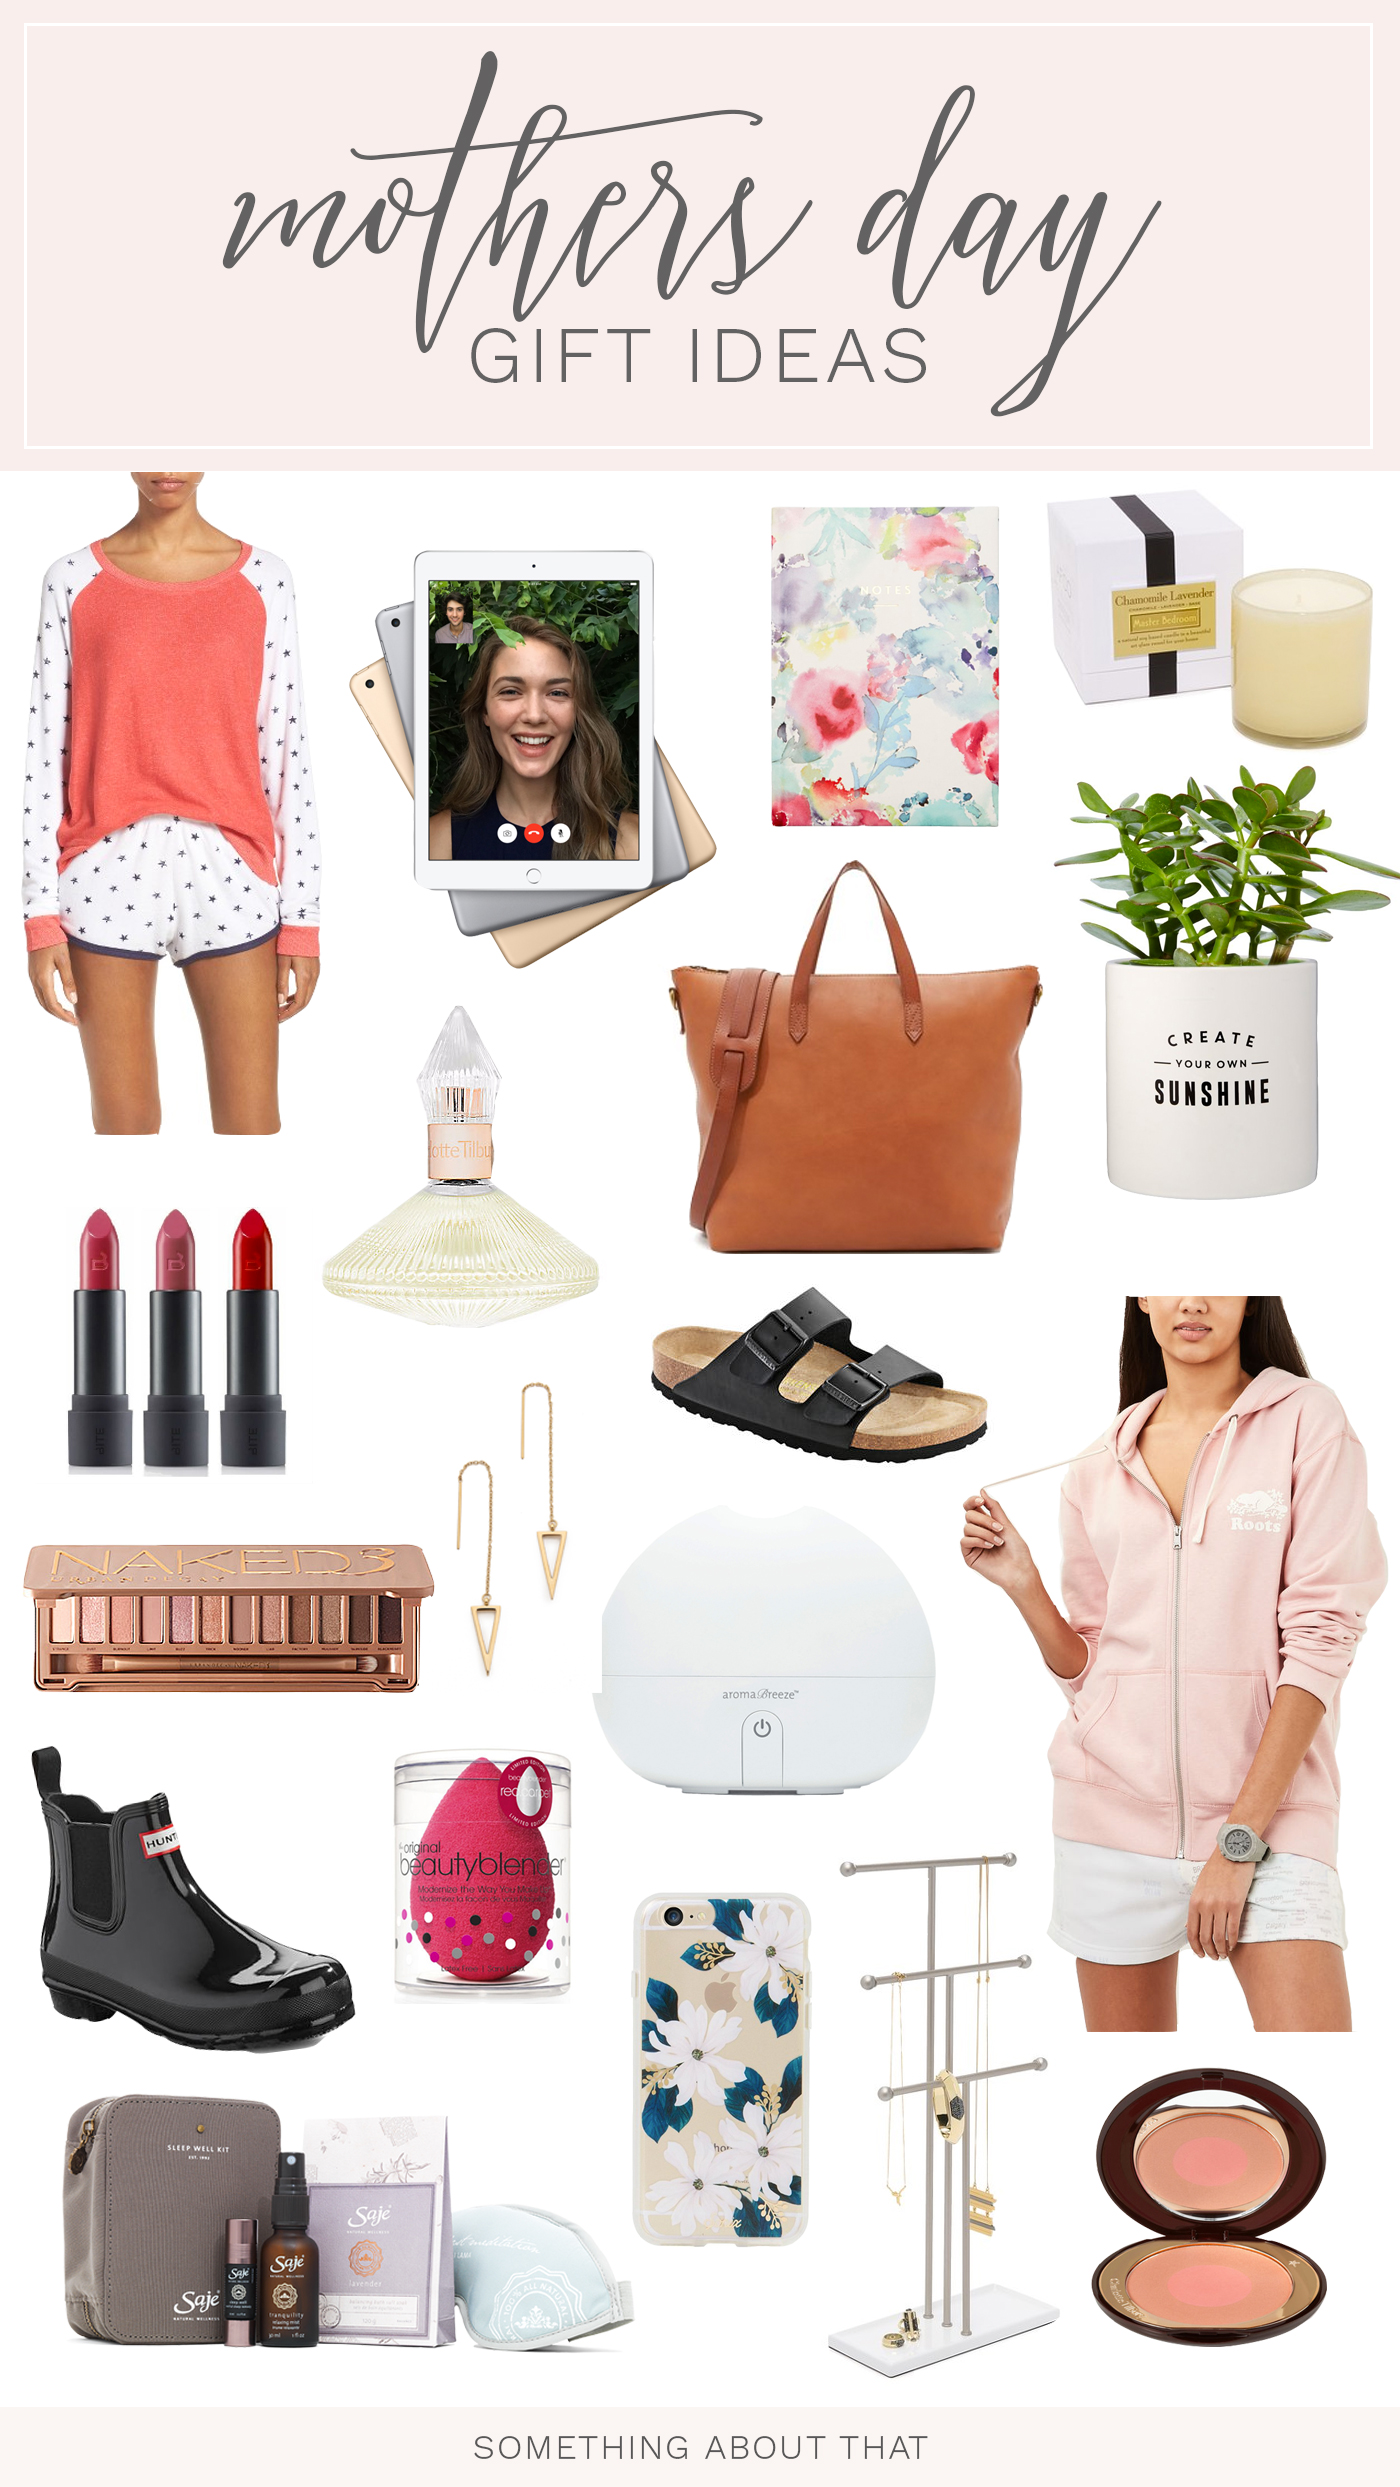 Best Mother's Day Gift Ideas for 2017 that she is guaranteed to like